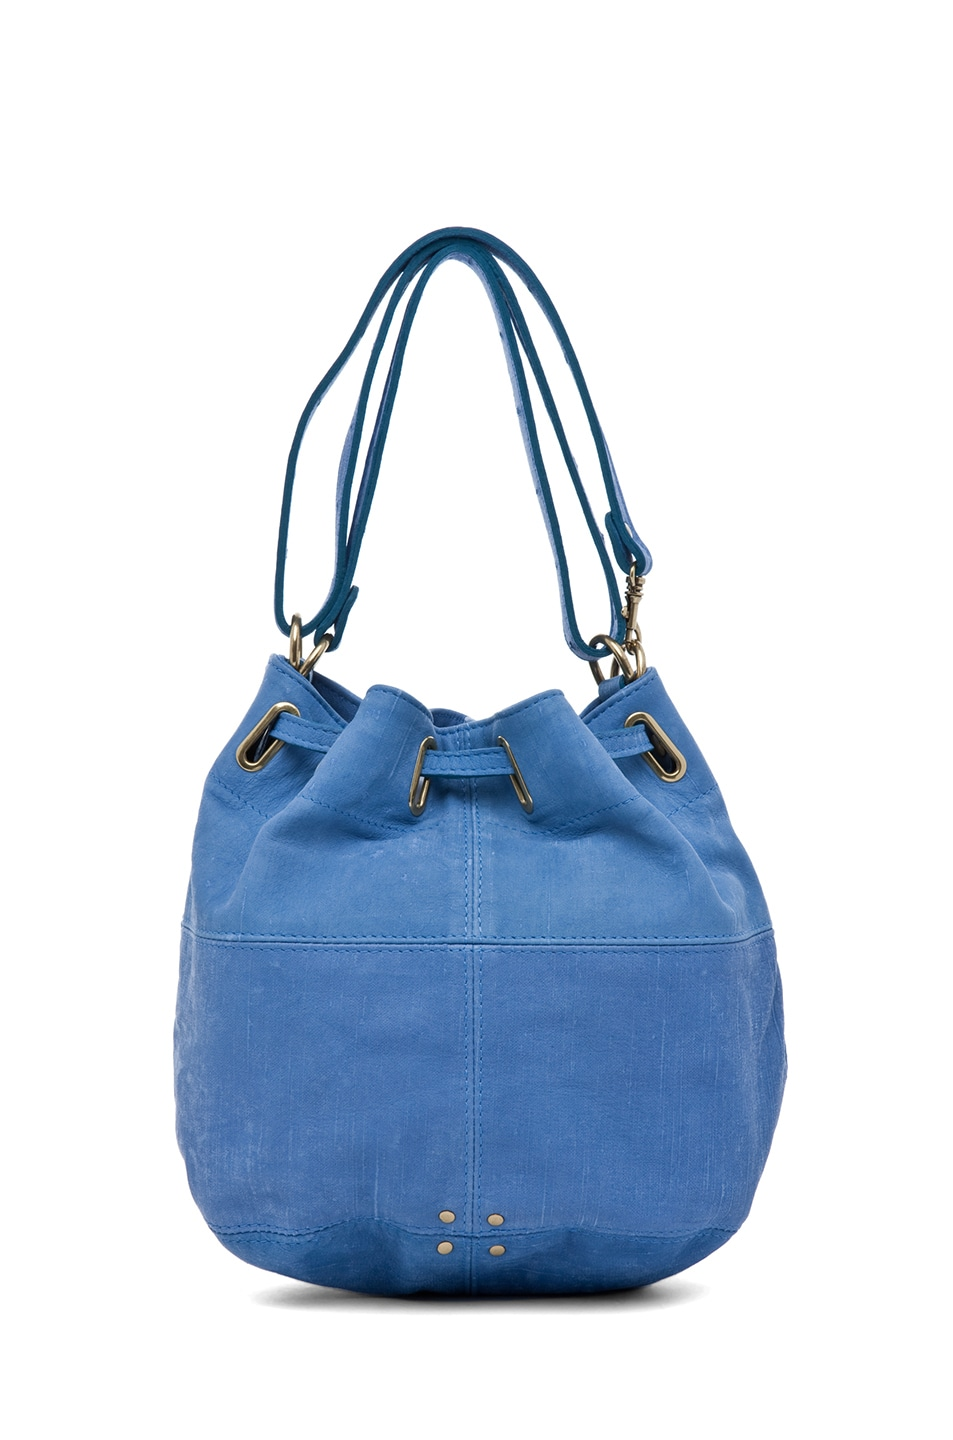 Image 3 of Jerome Dreyfuss Alain S Bag in Denim Bleu